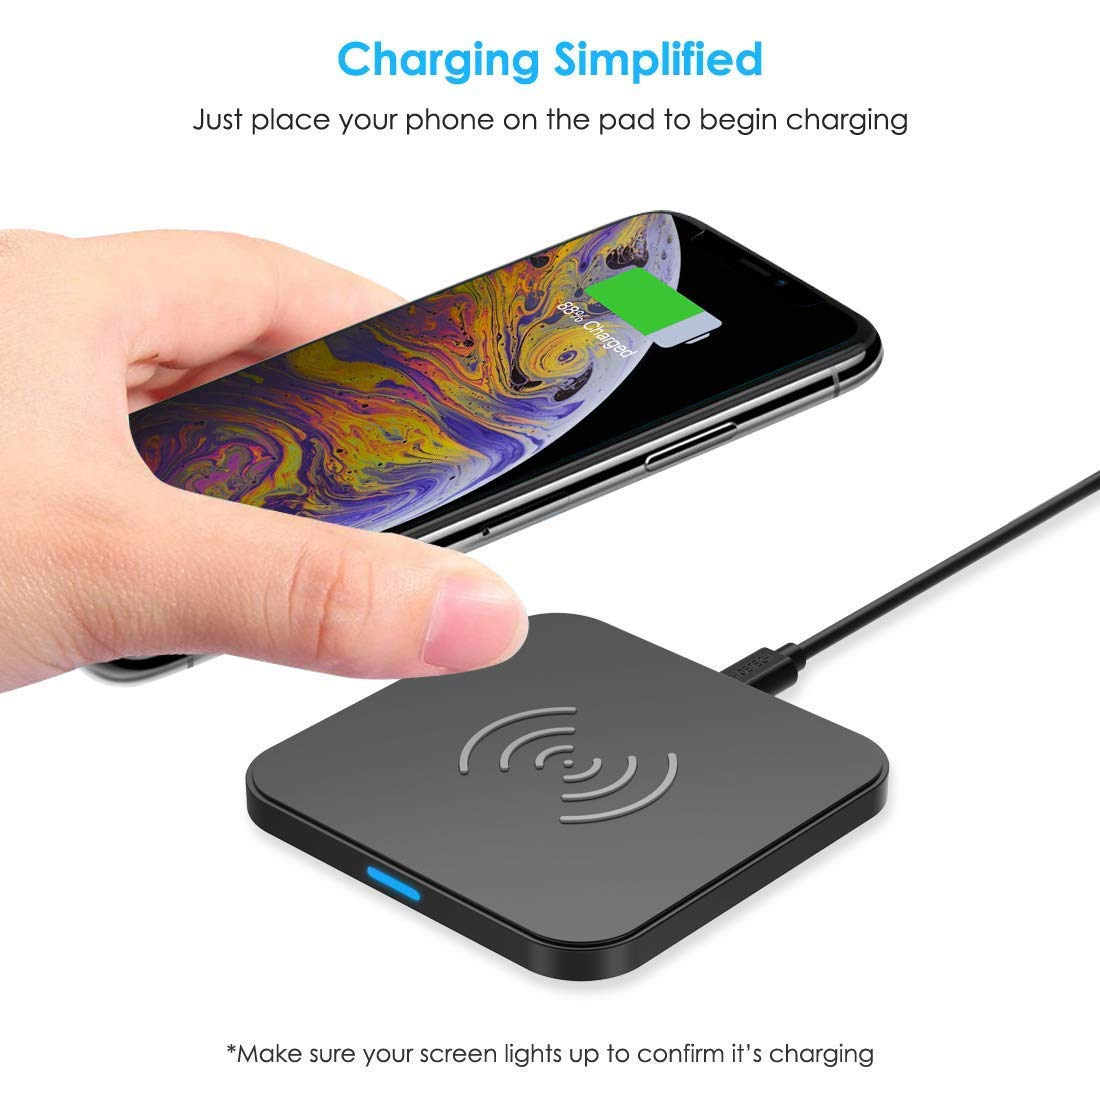 CHOETECH Wireless Charger, Qi Certified Wireless Charging Pad Compatible with iPhone Xs Max/XS/XR/X/8/8 Plus, Samsung Galaxy S10/S10+/S10E/Note 9/S9/S9+/Note 8/S8/S7, New AirPods and More by CHOETECH (Image #2)